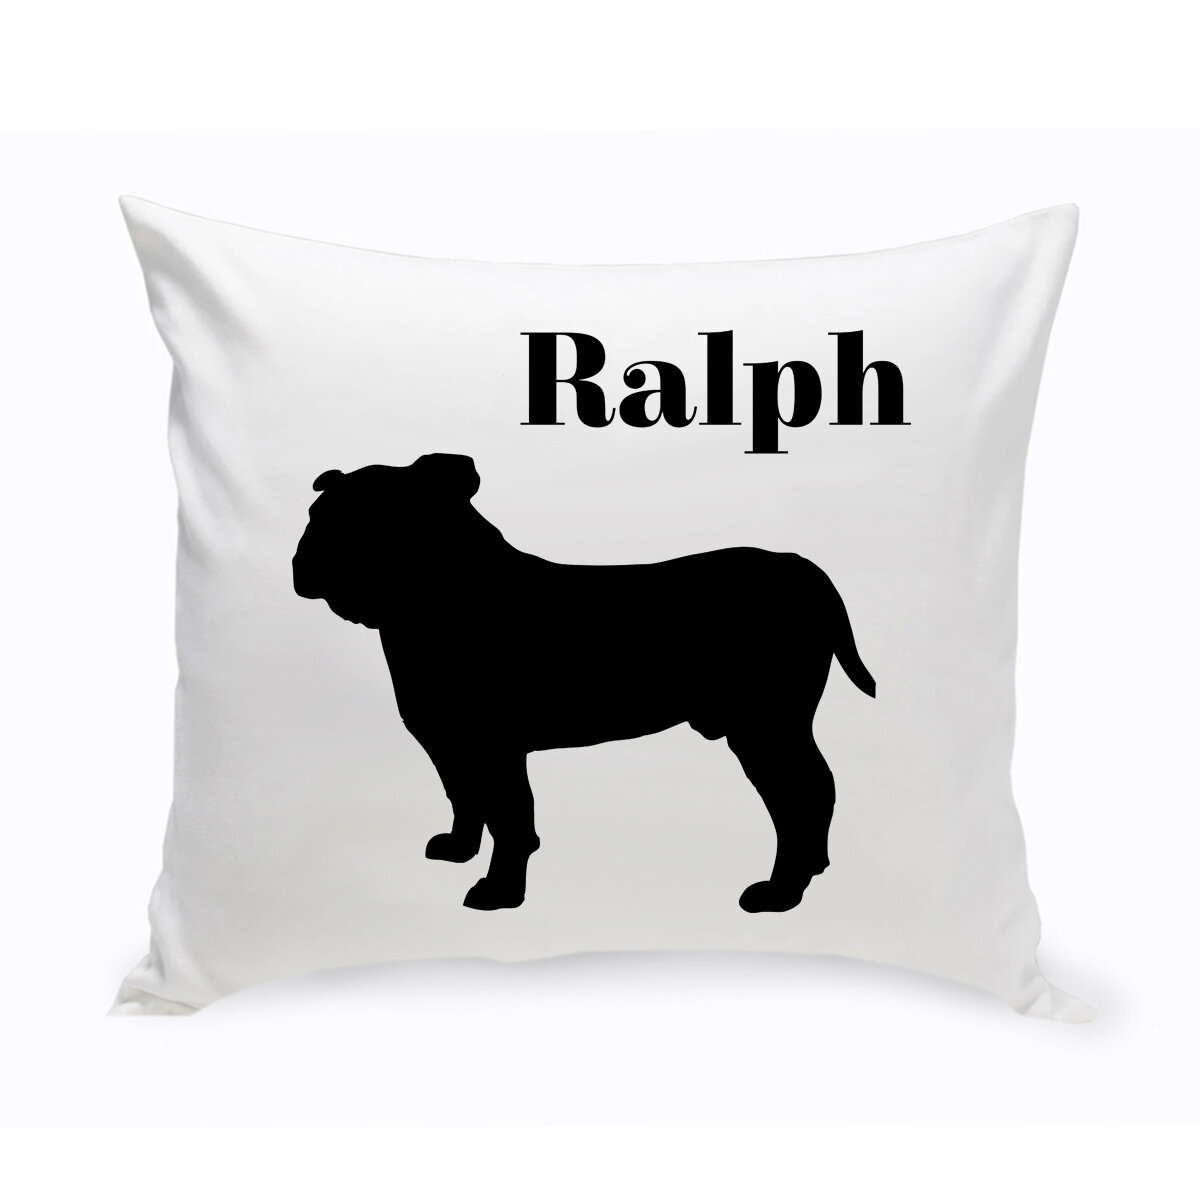 Jds Personalized Gifts Personalized English Bulldog Classic Silhouette Throw Pillow Wayfair